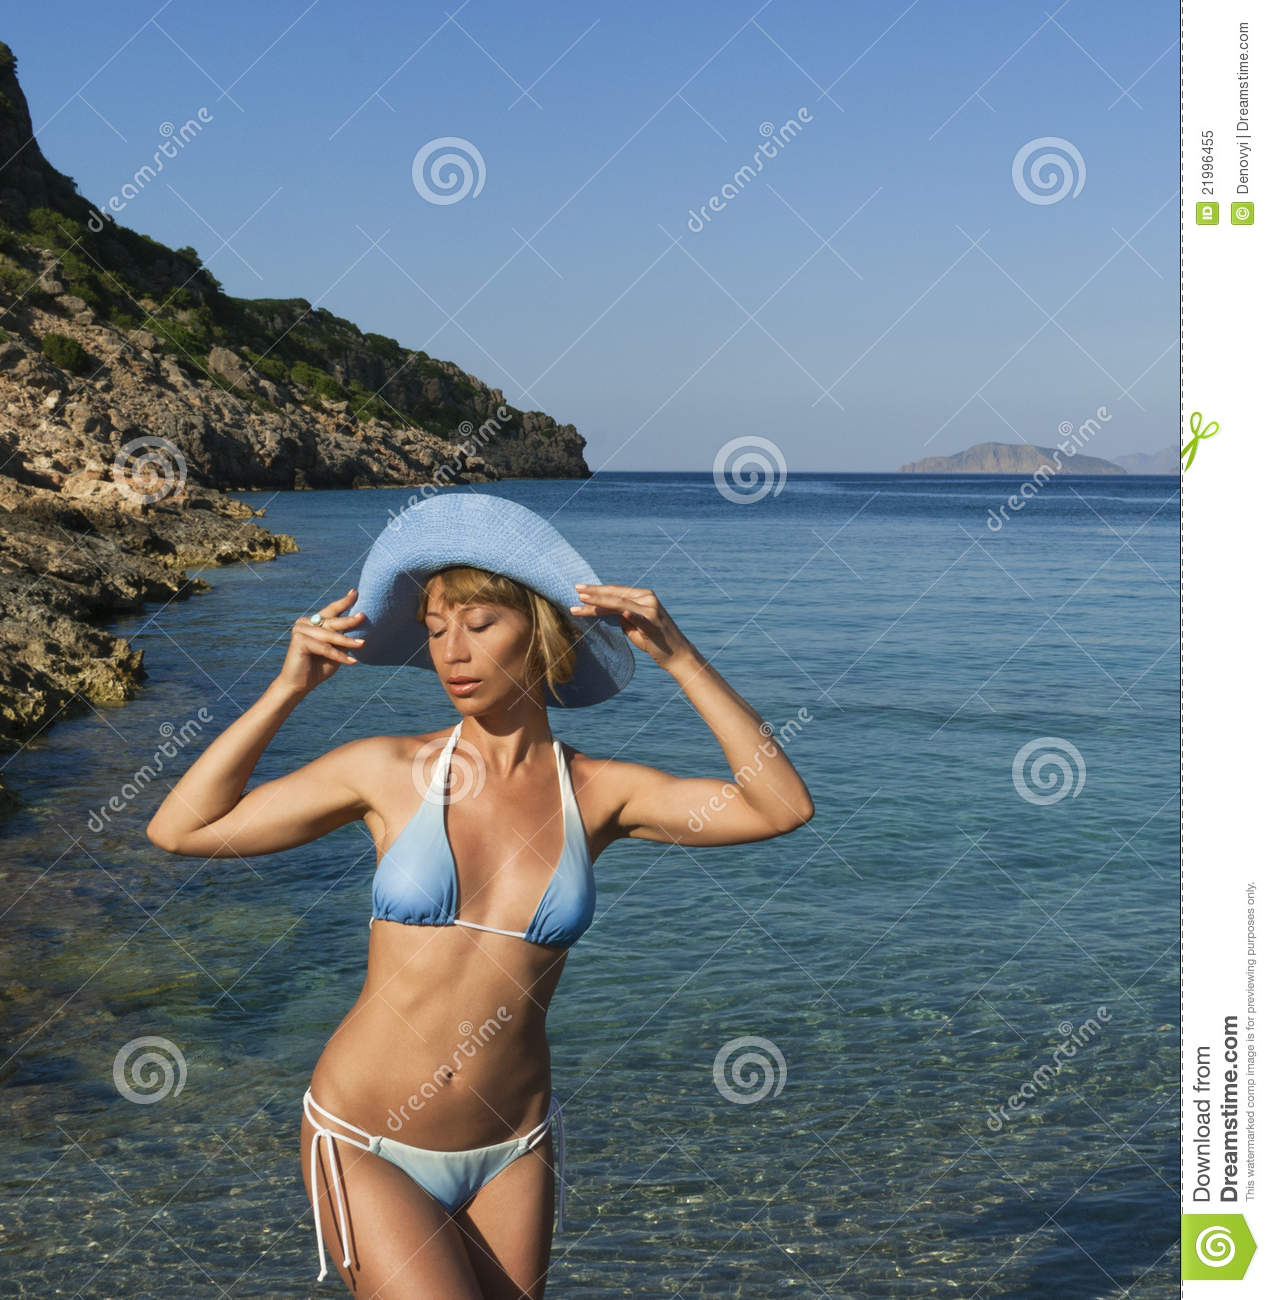 Wallpaper Cowboy Girl Sexy Woman Dreaming Near Clear Sea Royalty Free Stock